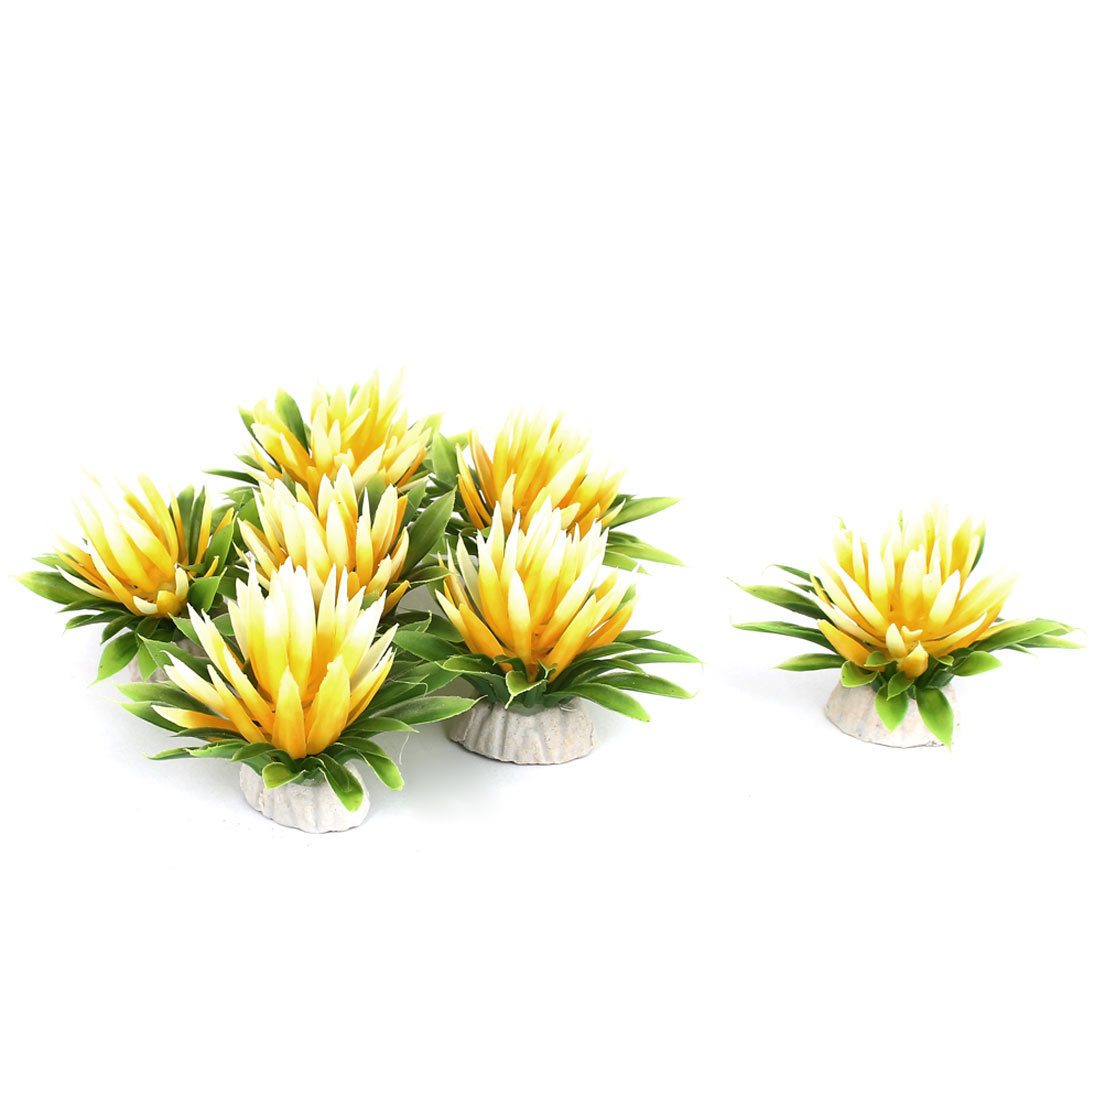 Aquarium Fish Tank Bowl Artificial Fake Flower Plant Decor Ornament Yellow 7Pcs